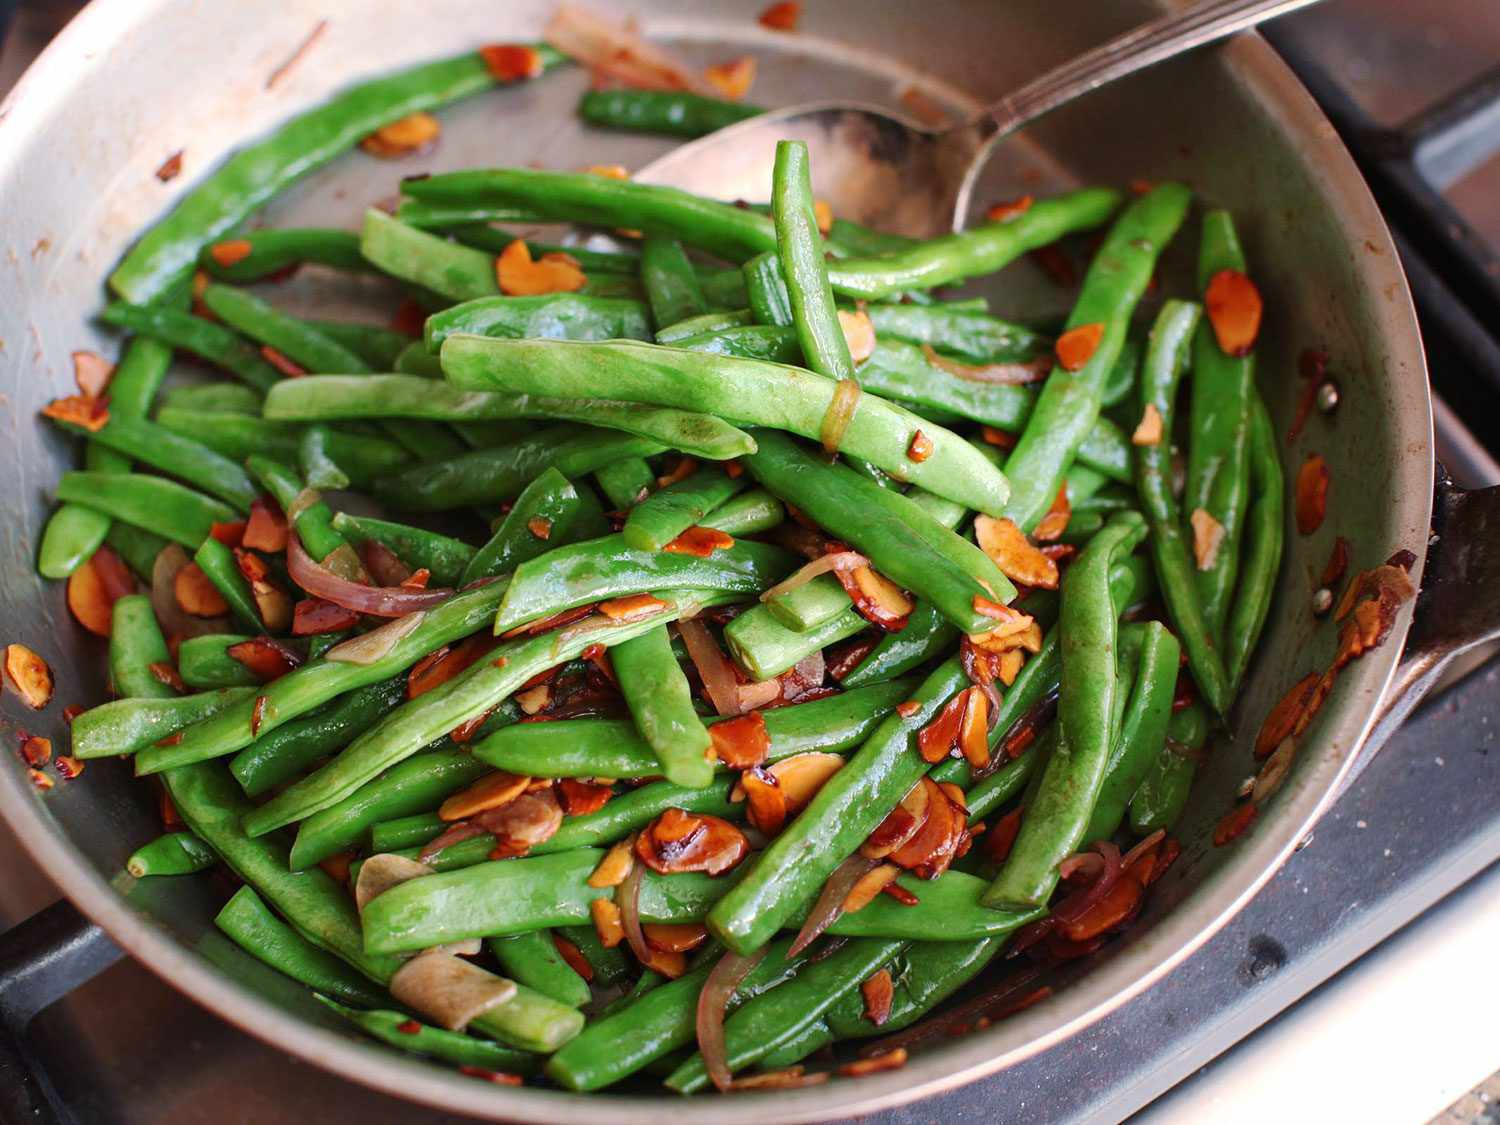 Closeup of green beans Amandine in a skillet.